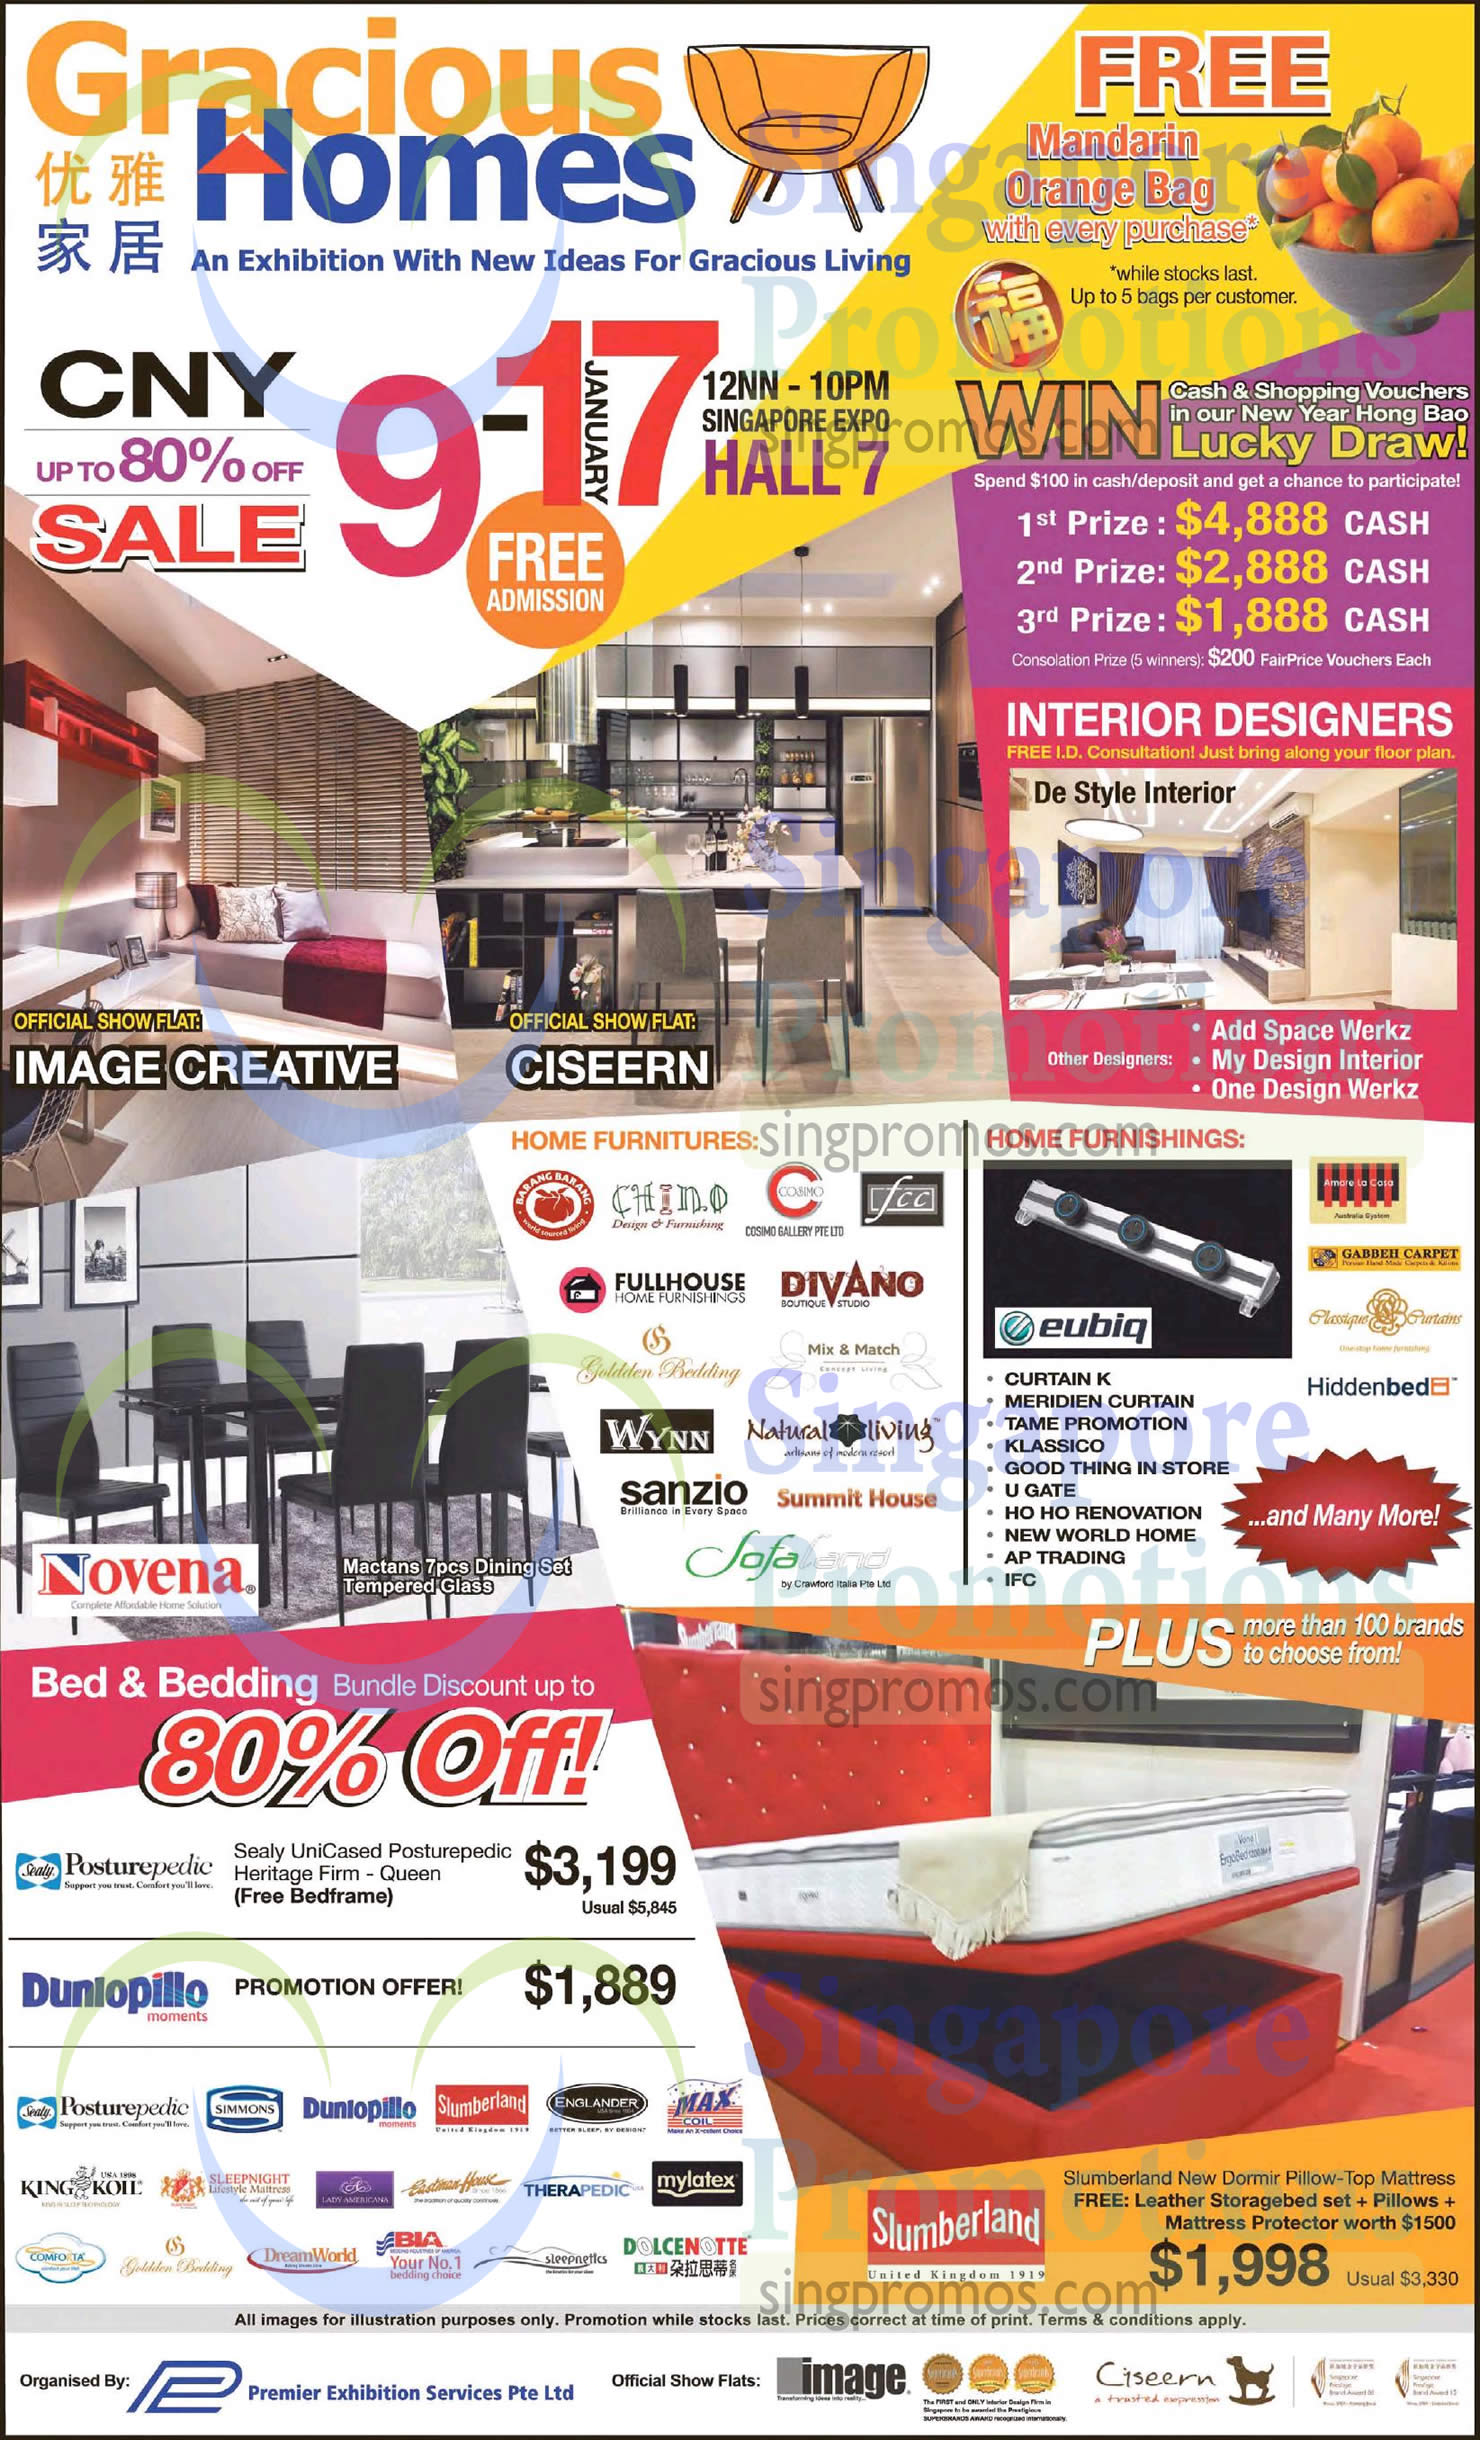 Gracious Homes 9 Jan 2016 Gracious Homes 2016